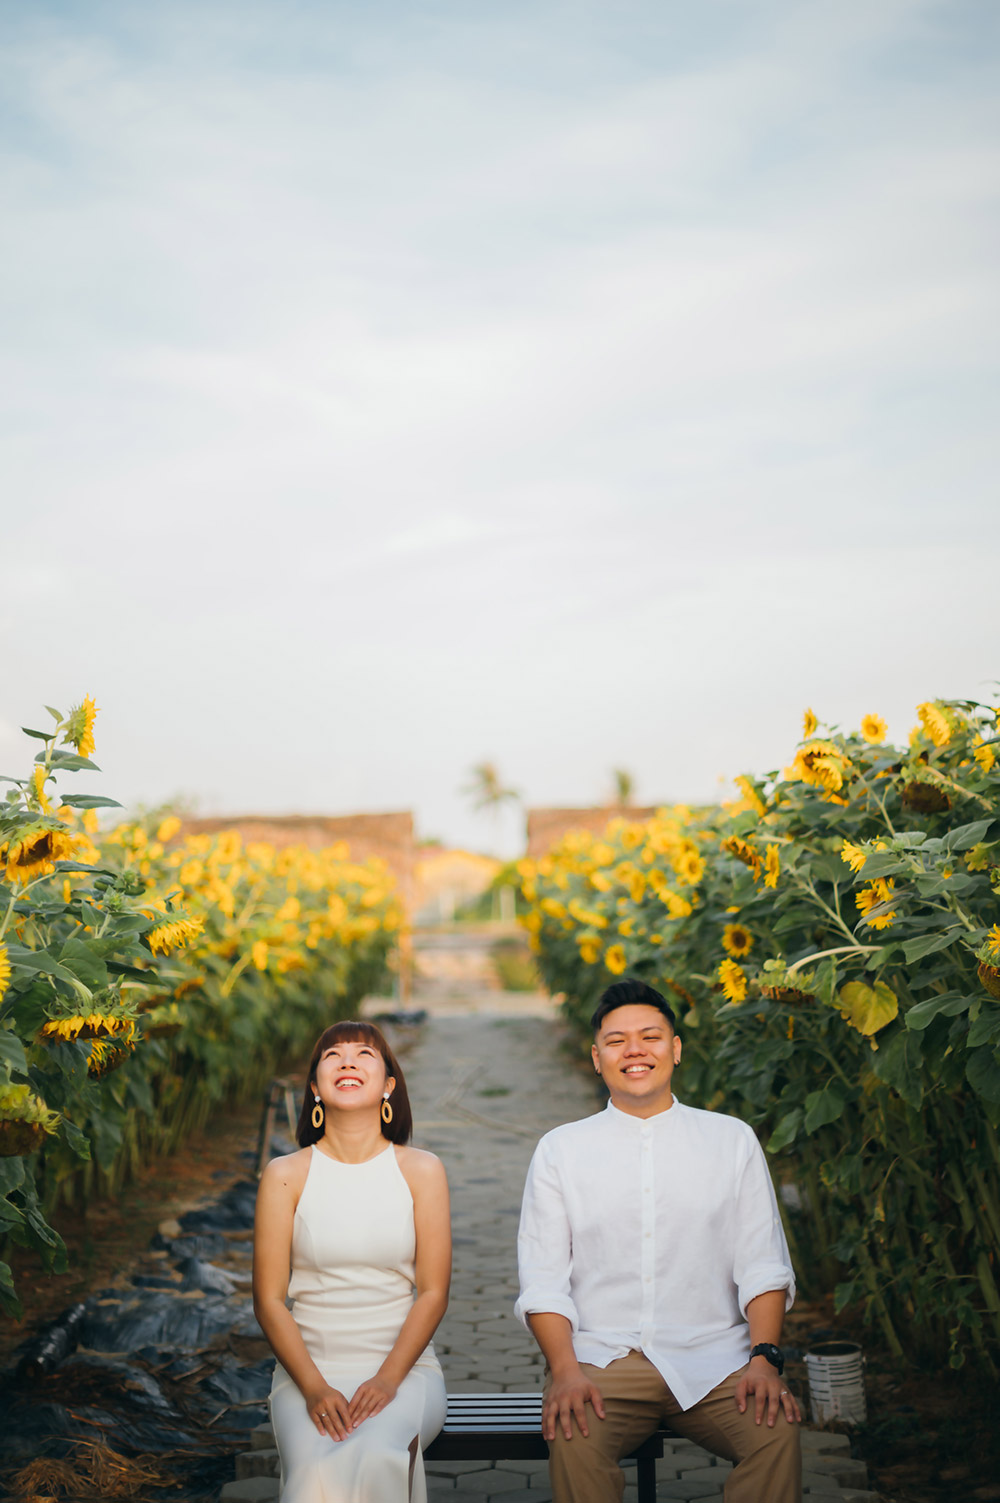 Wedding portraits in a sunflower garden in Malaysia. Photography Justmarrywedding. www.theweddingnotebook.com